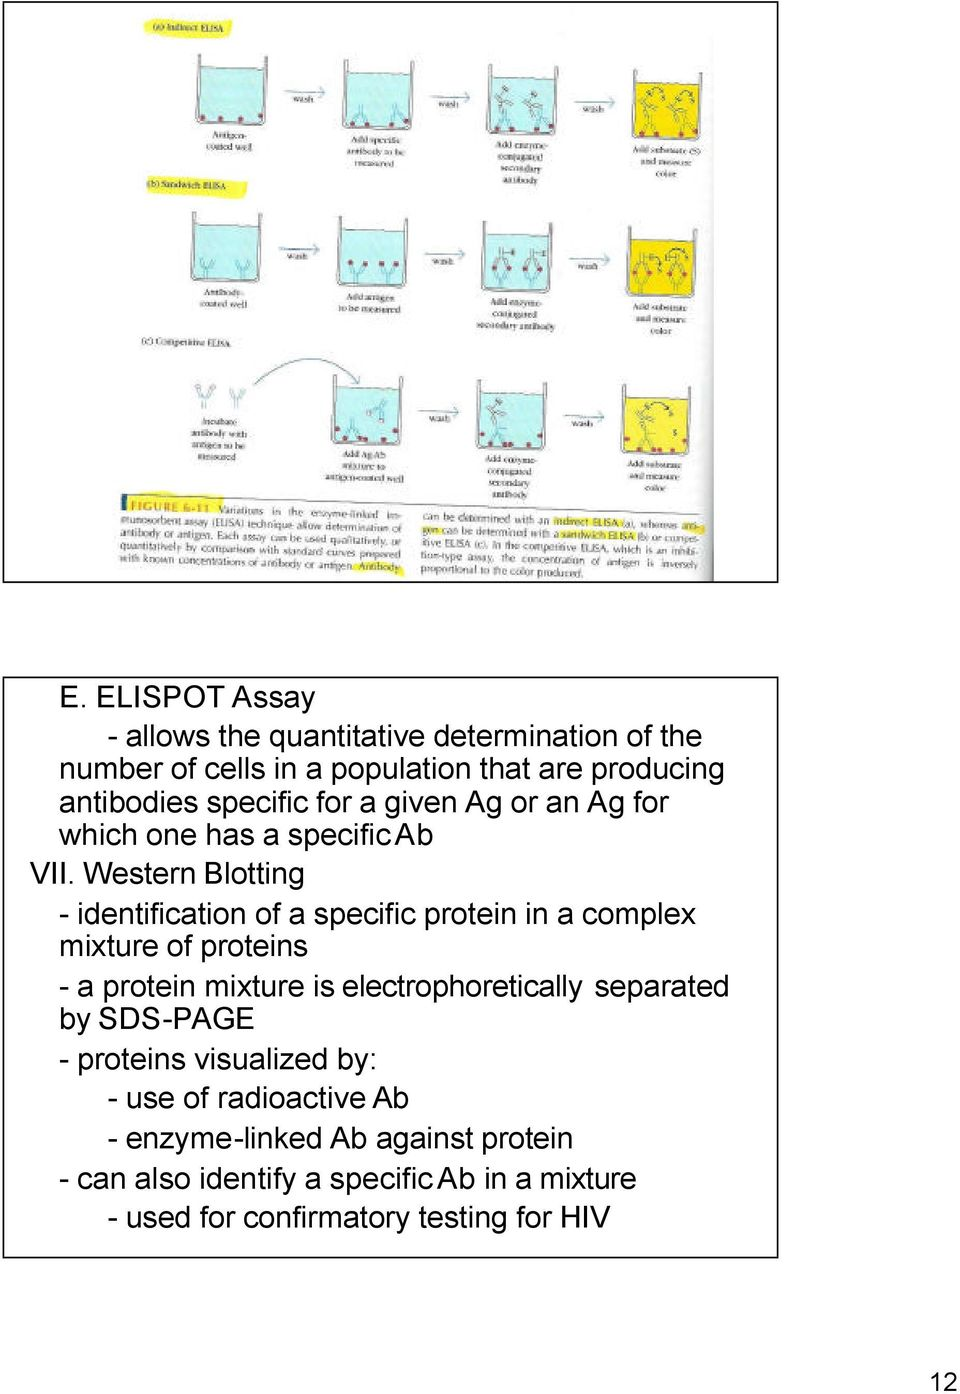 Western Blotting - identification of a specific protein in a complex mixture of proteins - a protein mixture is